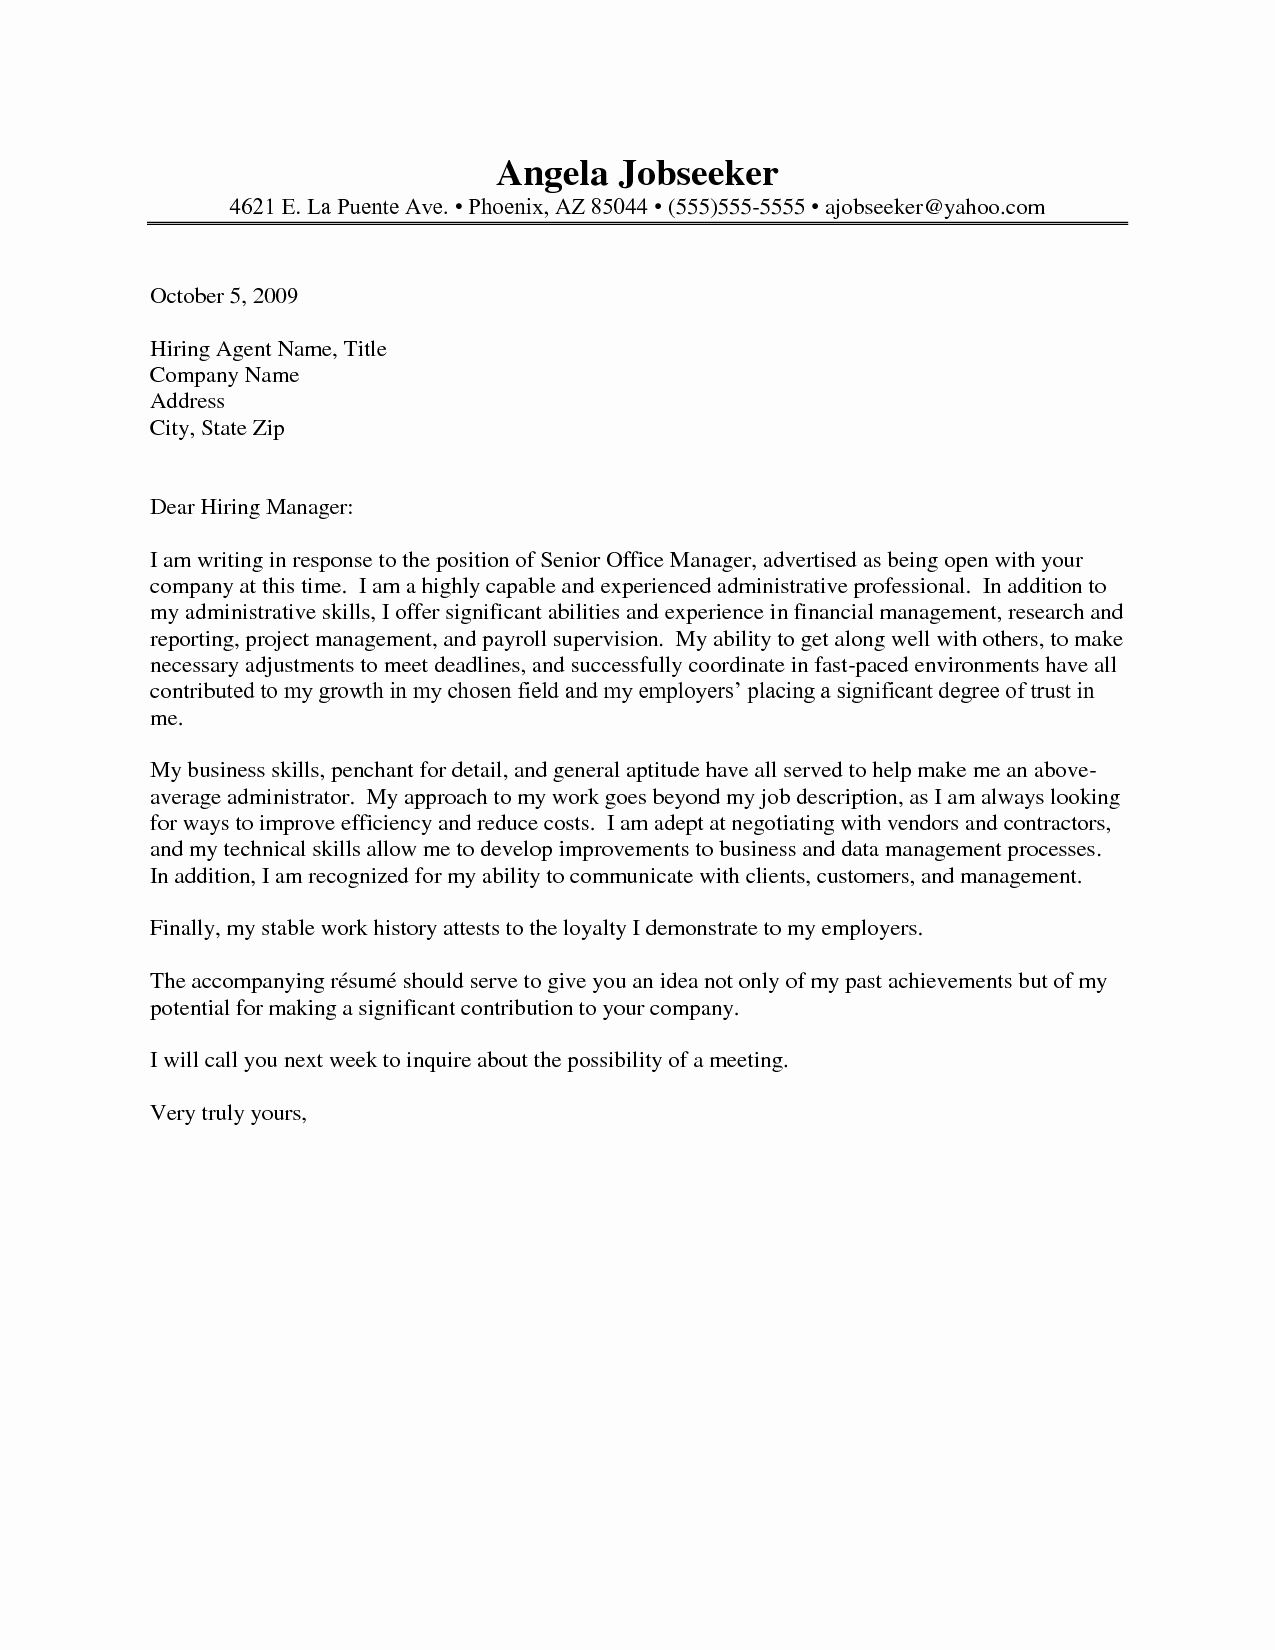 Sample Administrative Cover Letter Awesome Administrative assistant Cover Letters 2016